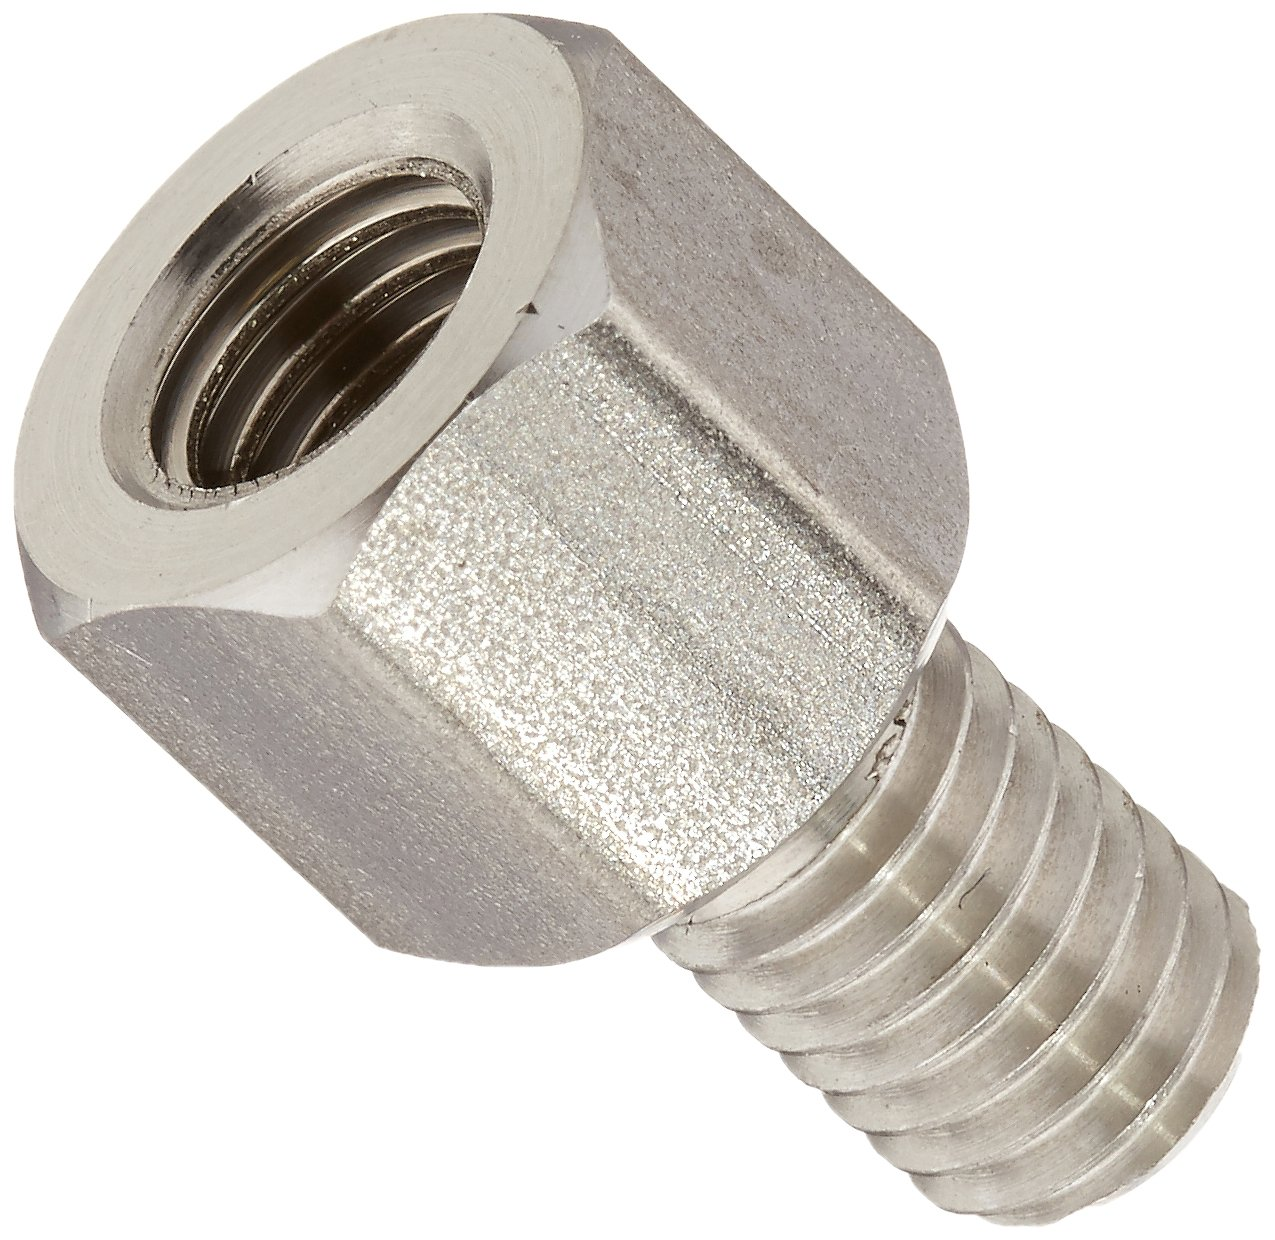 1.312 Length, Lyn-Tron Zinc Plated Female 0.375 OD 6-32 Screw Size Pack of 5 Brass